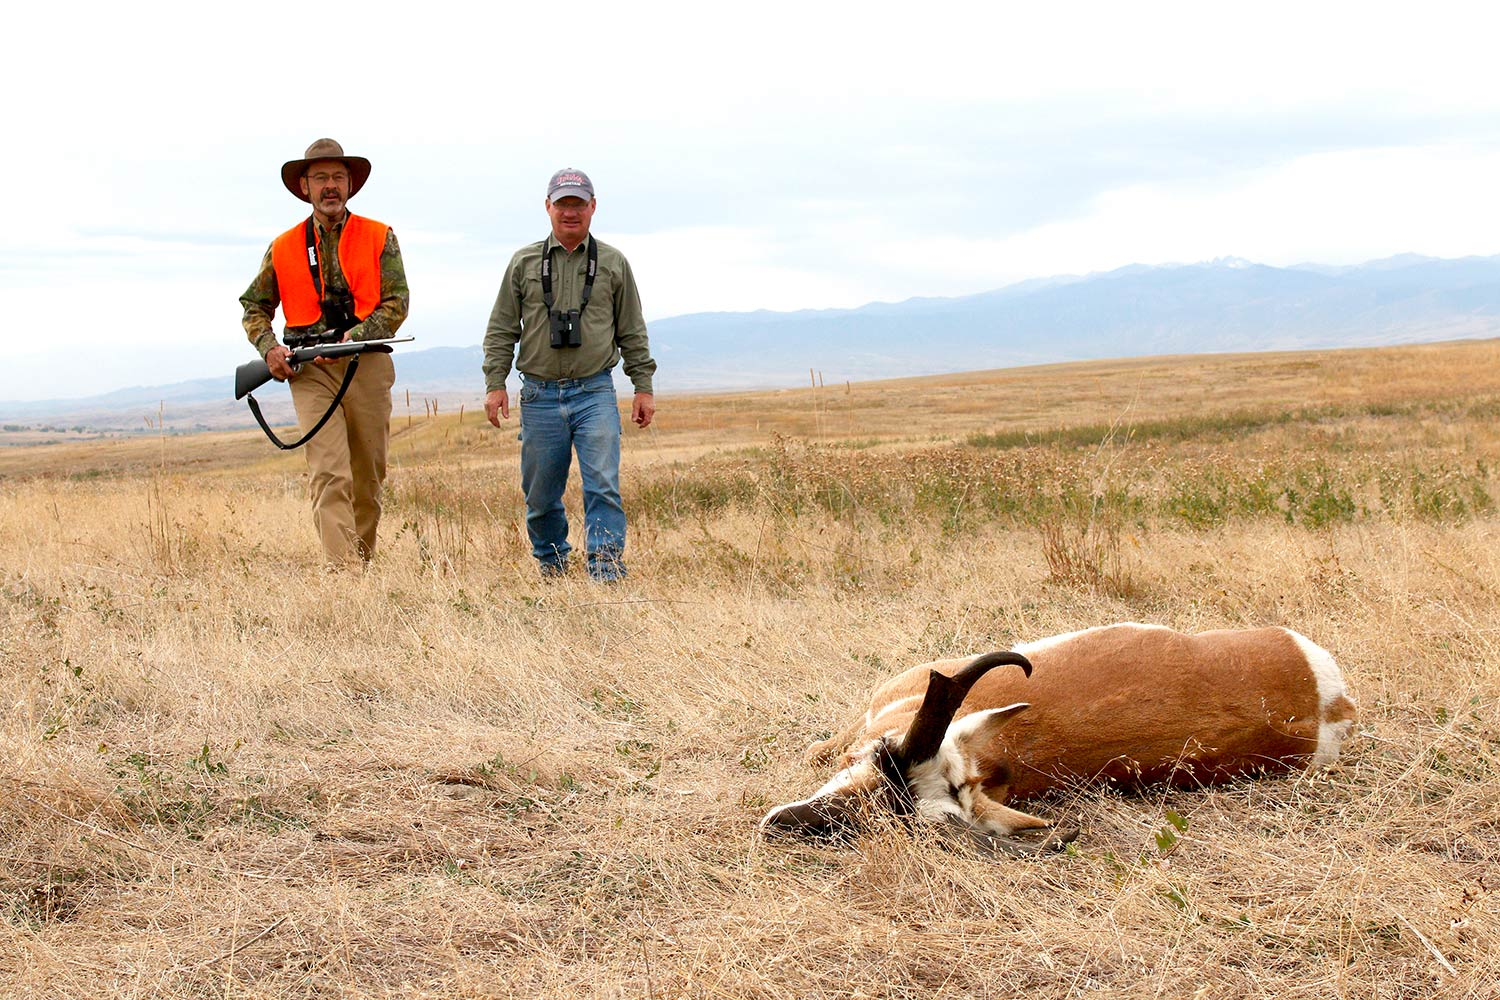 Two hunters walking through a field towards an antelope.